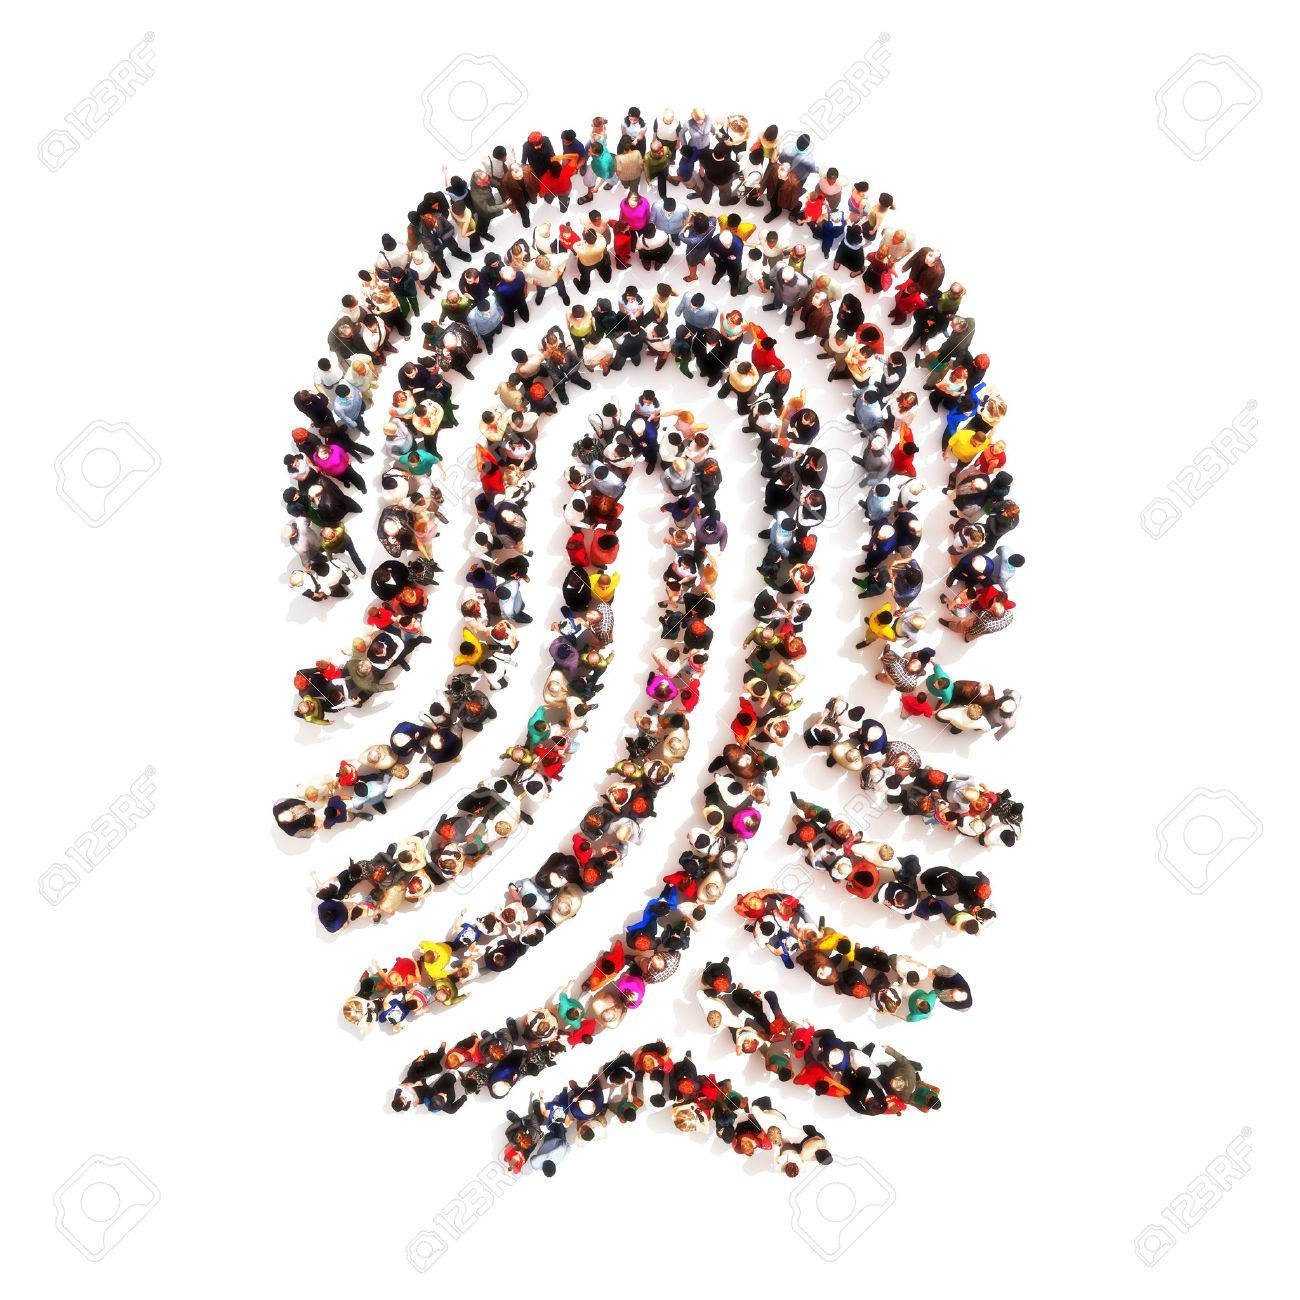 Large group pf people in the shape of a fingerprint on an isolated white background. People finding there identity, identity theft, individuality concept. Stock Photo - 47415009